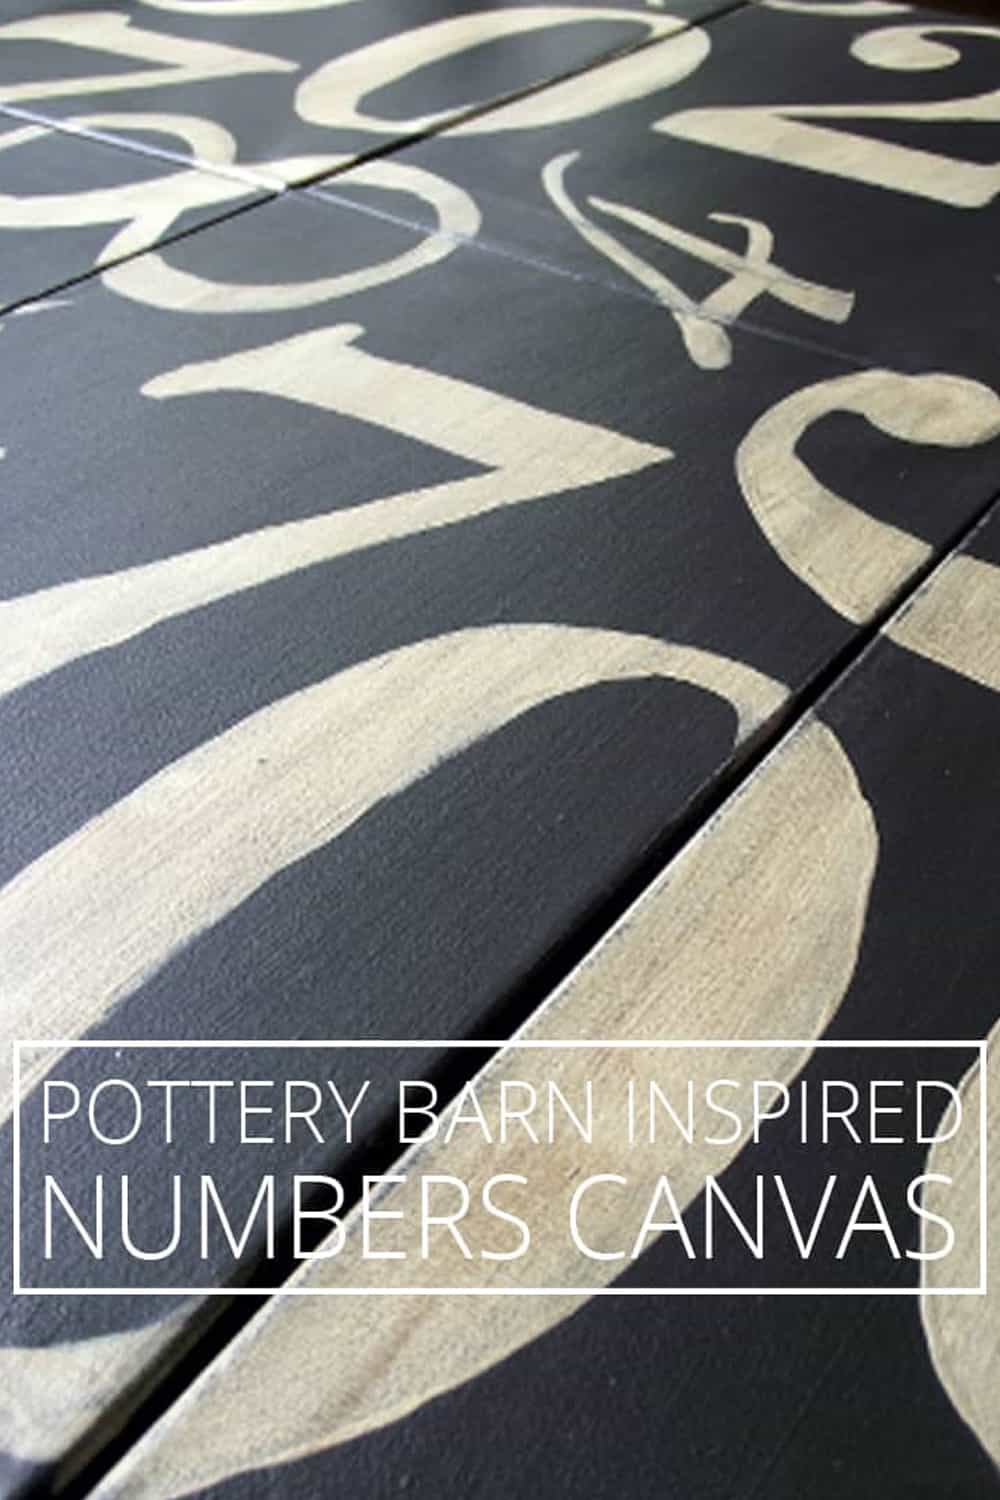 Pottery Barn Inspired Numbers Canvas for Less Than